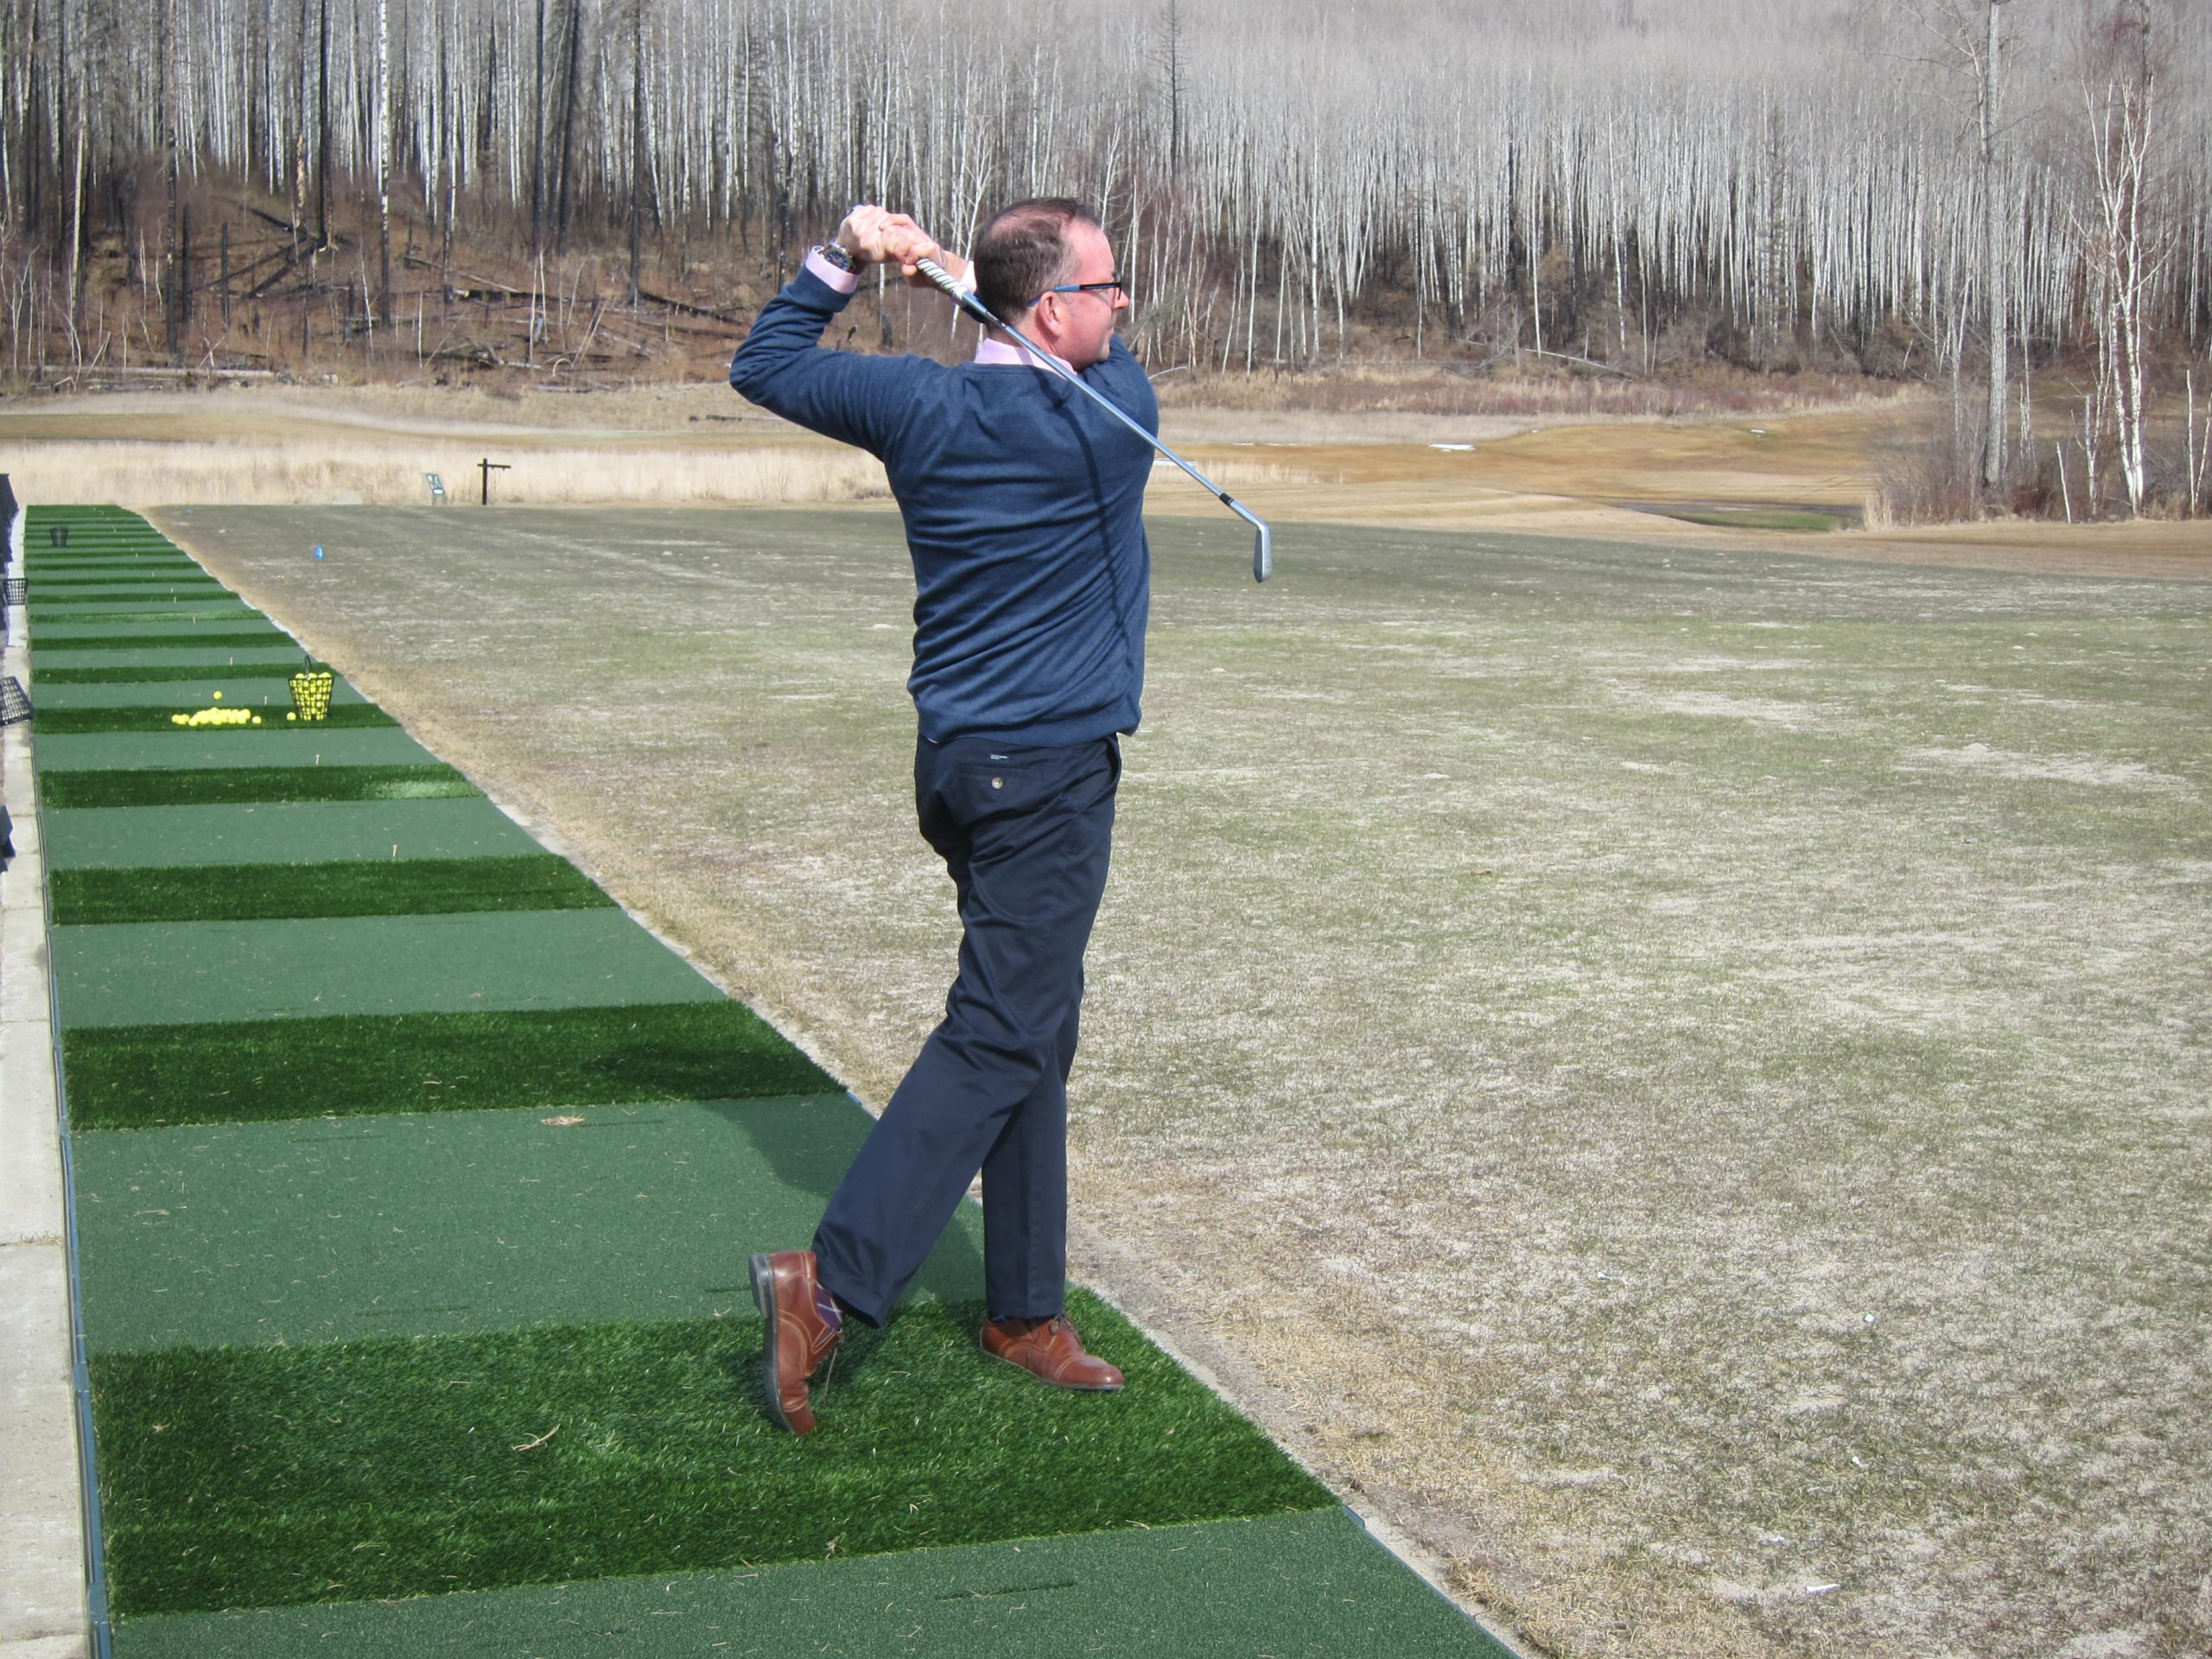 Fort McMurray Golf Courses Preparing To Open For The Season